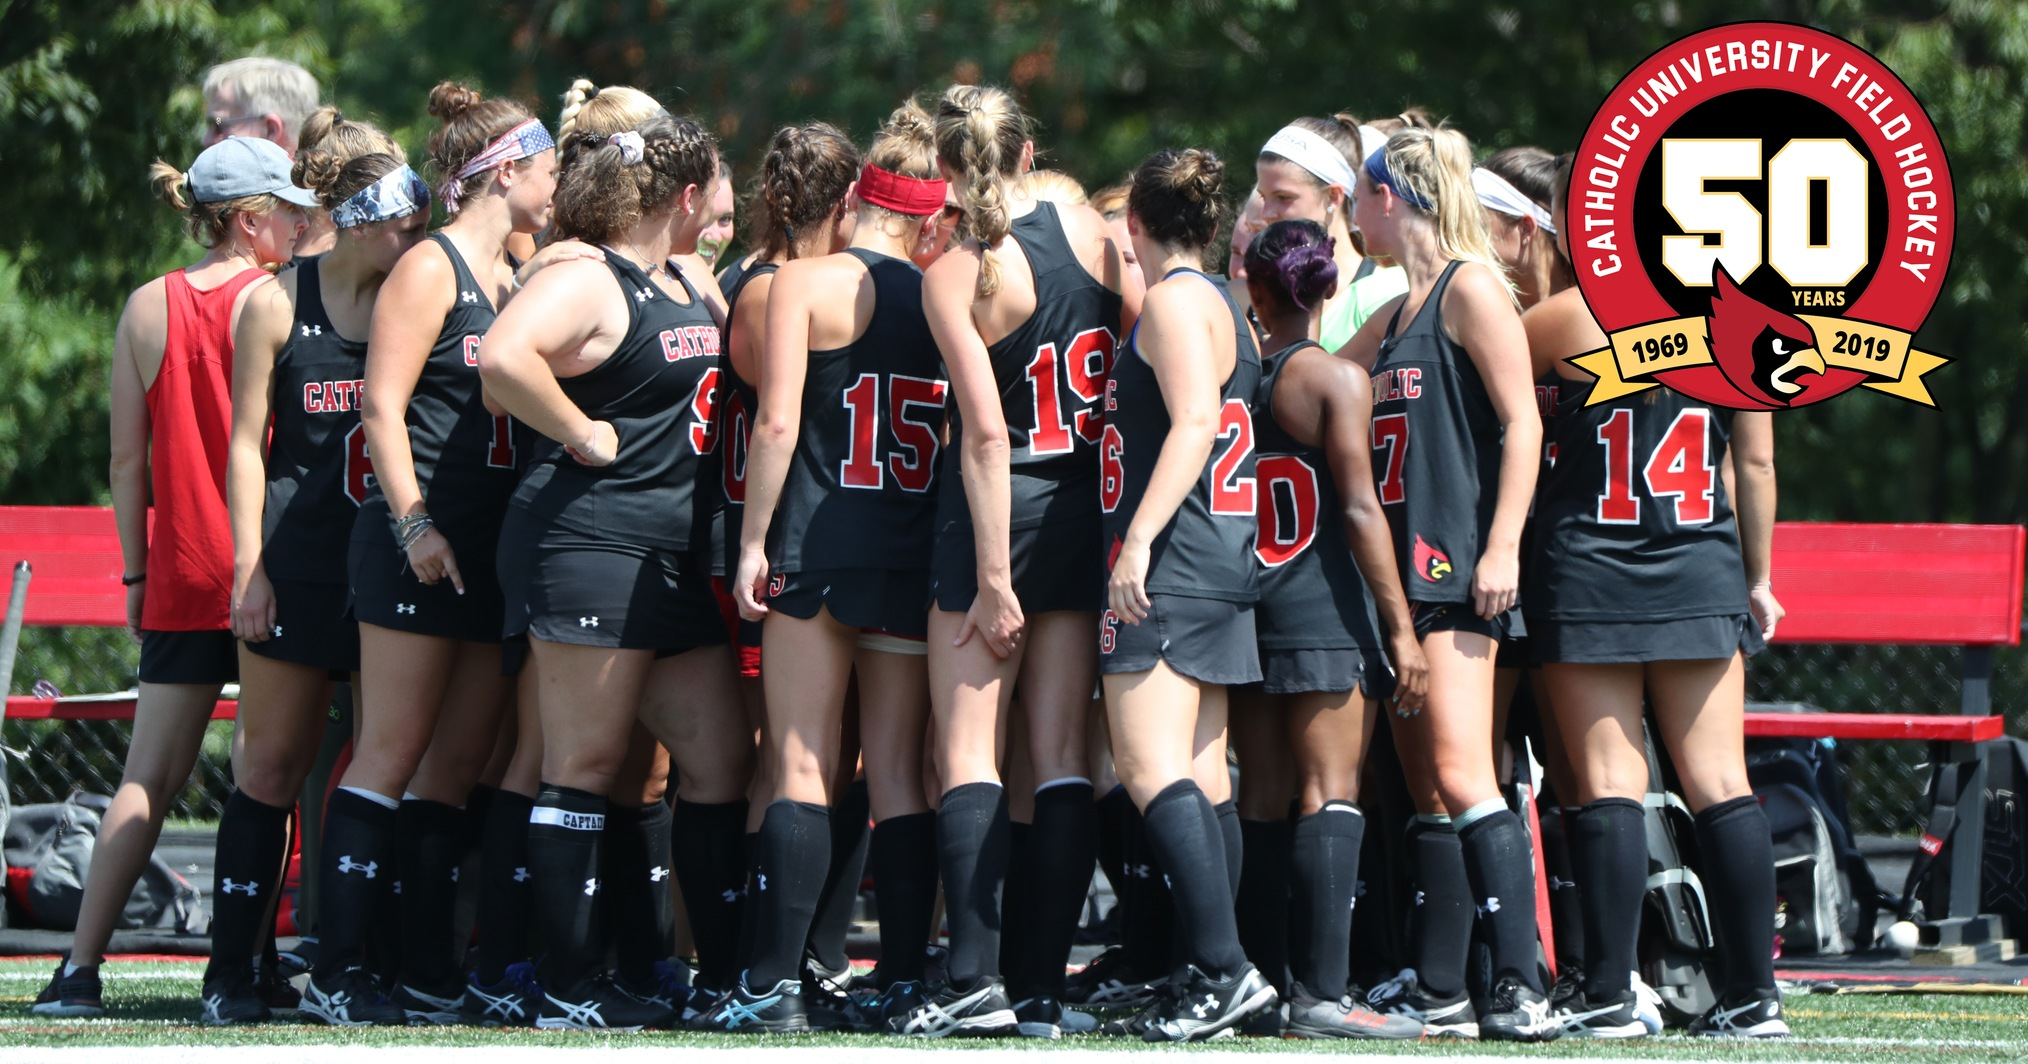 Field Hockey Celebrates 50th Anniversary Saturday